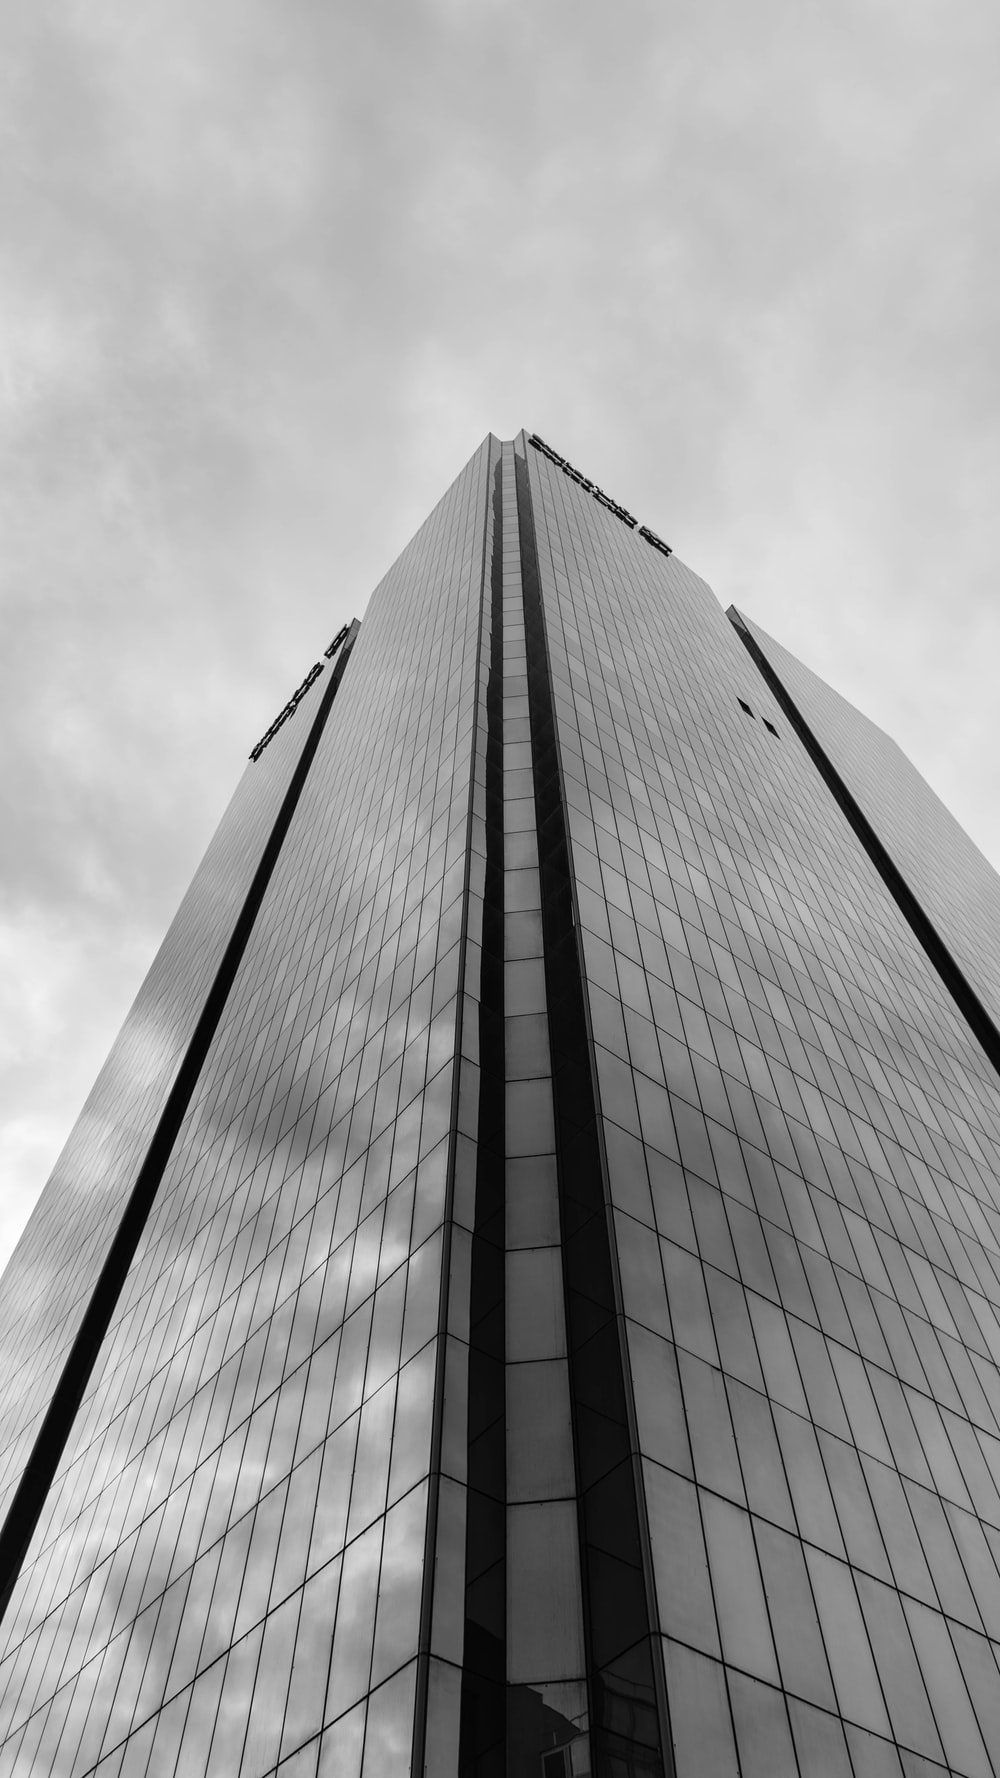 low angle of glass tall building